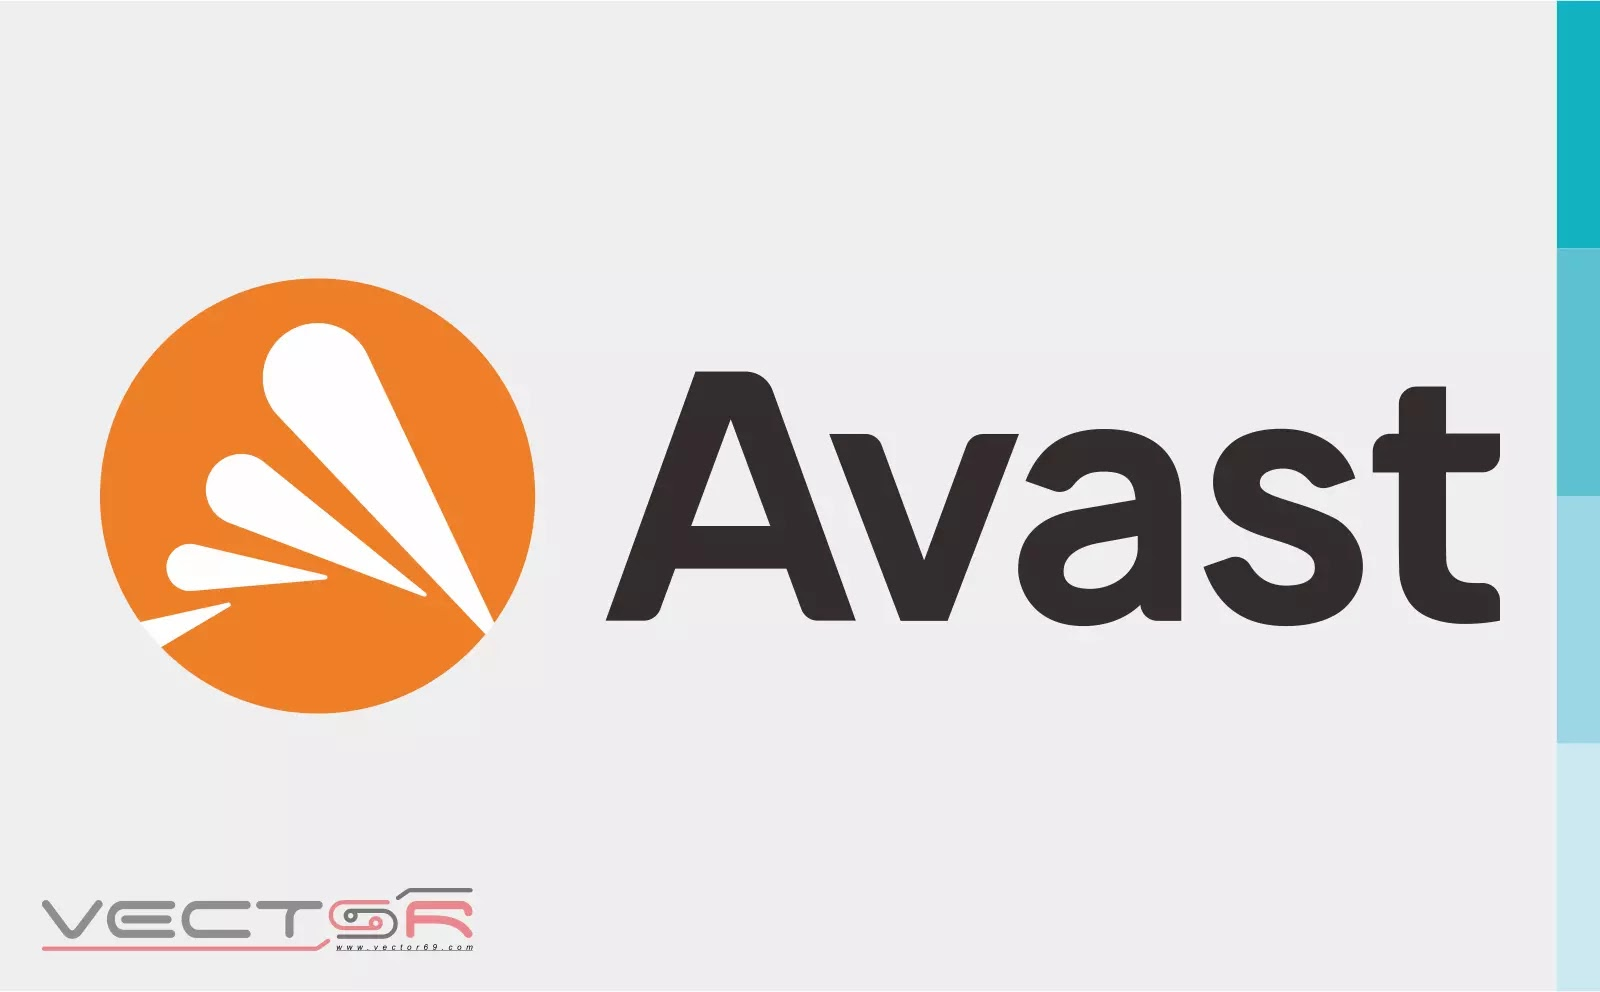 Avast Antivirus (2021) Logo - Download Vector File SVG (Scalable Vector Graphics)